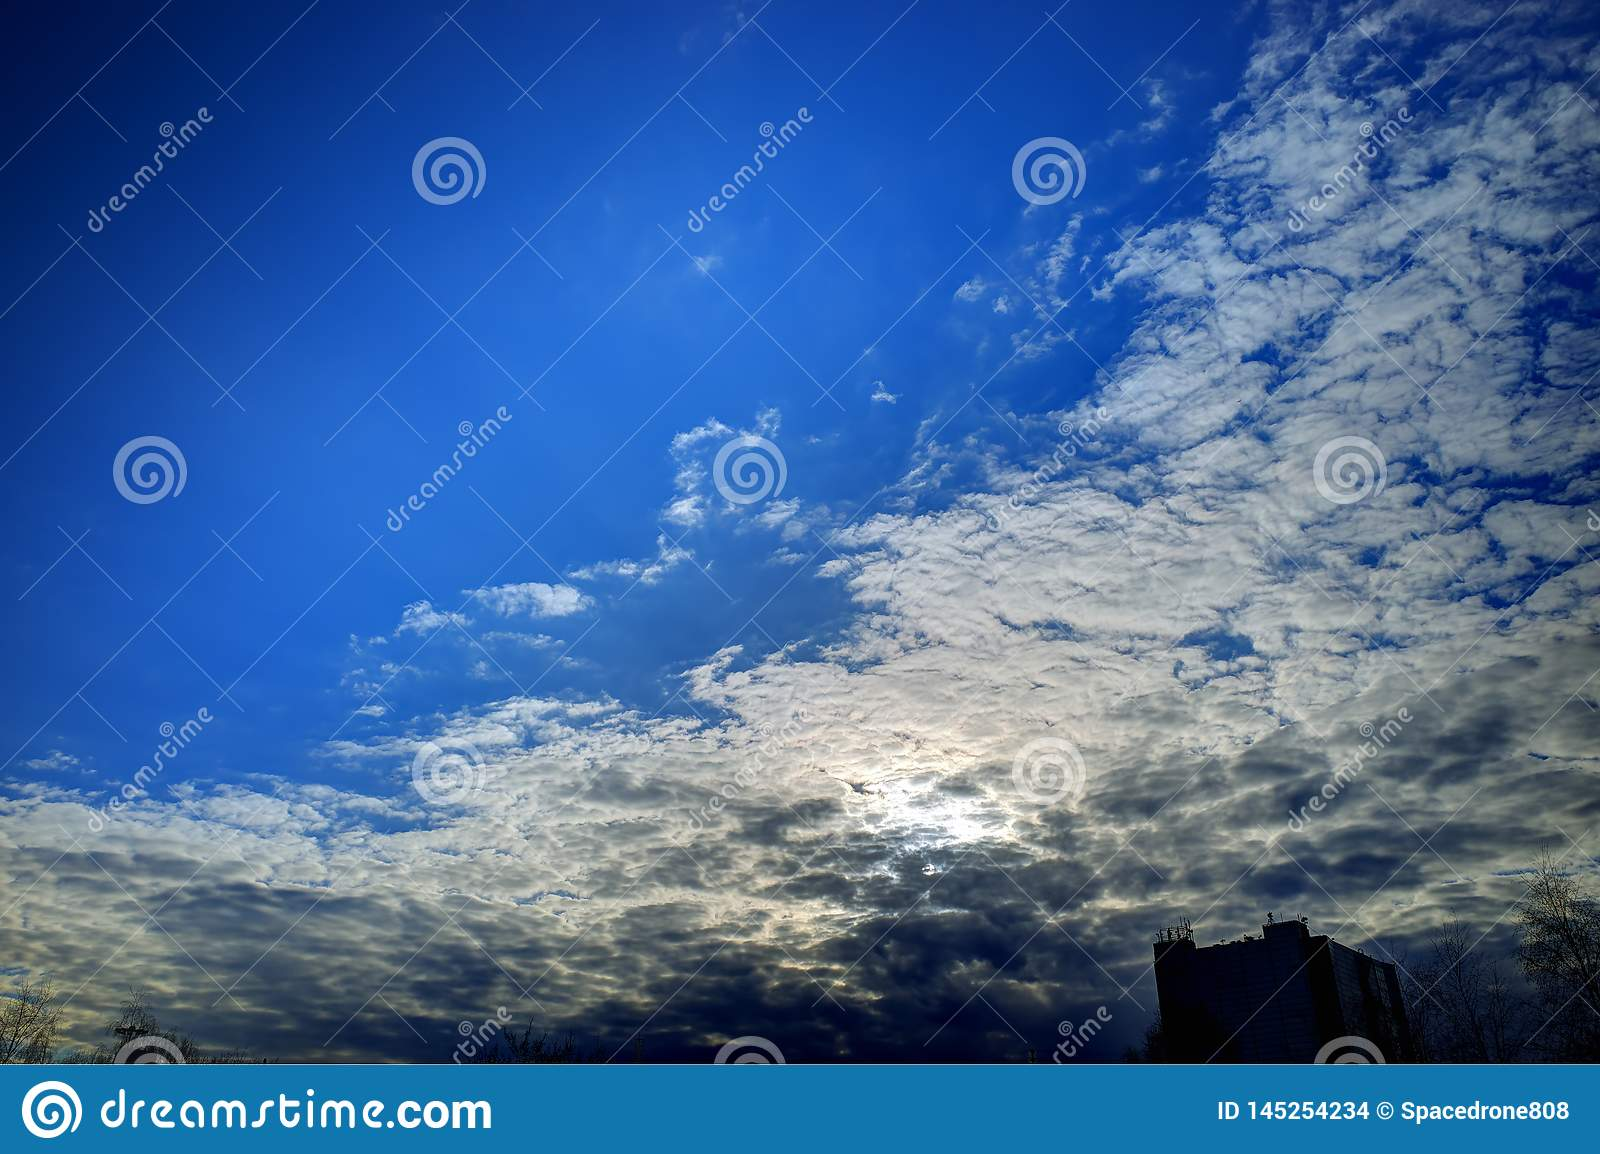 Dramatic Clouds Over The City Skyline Background Hd Stock